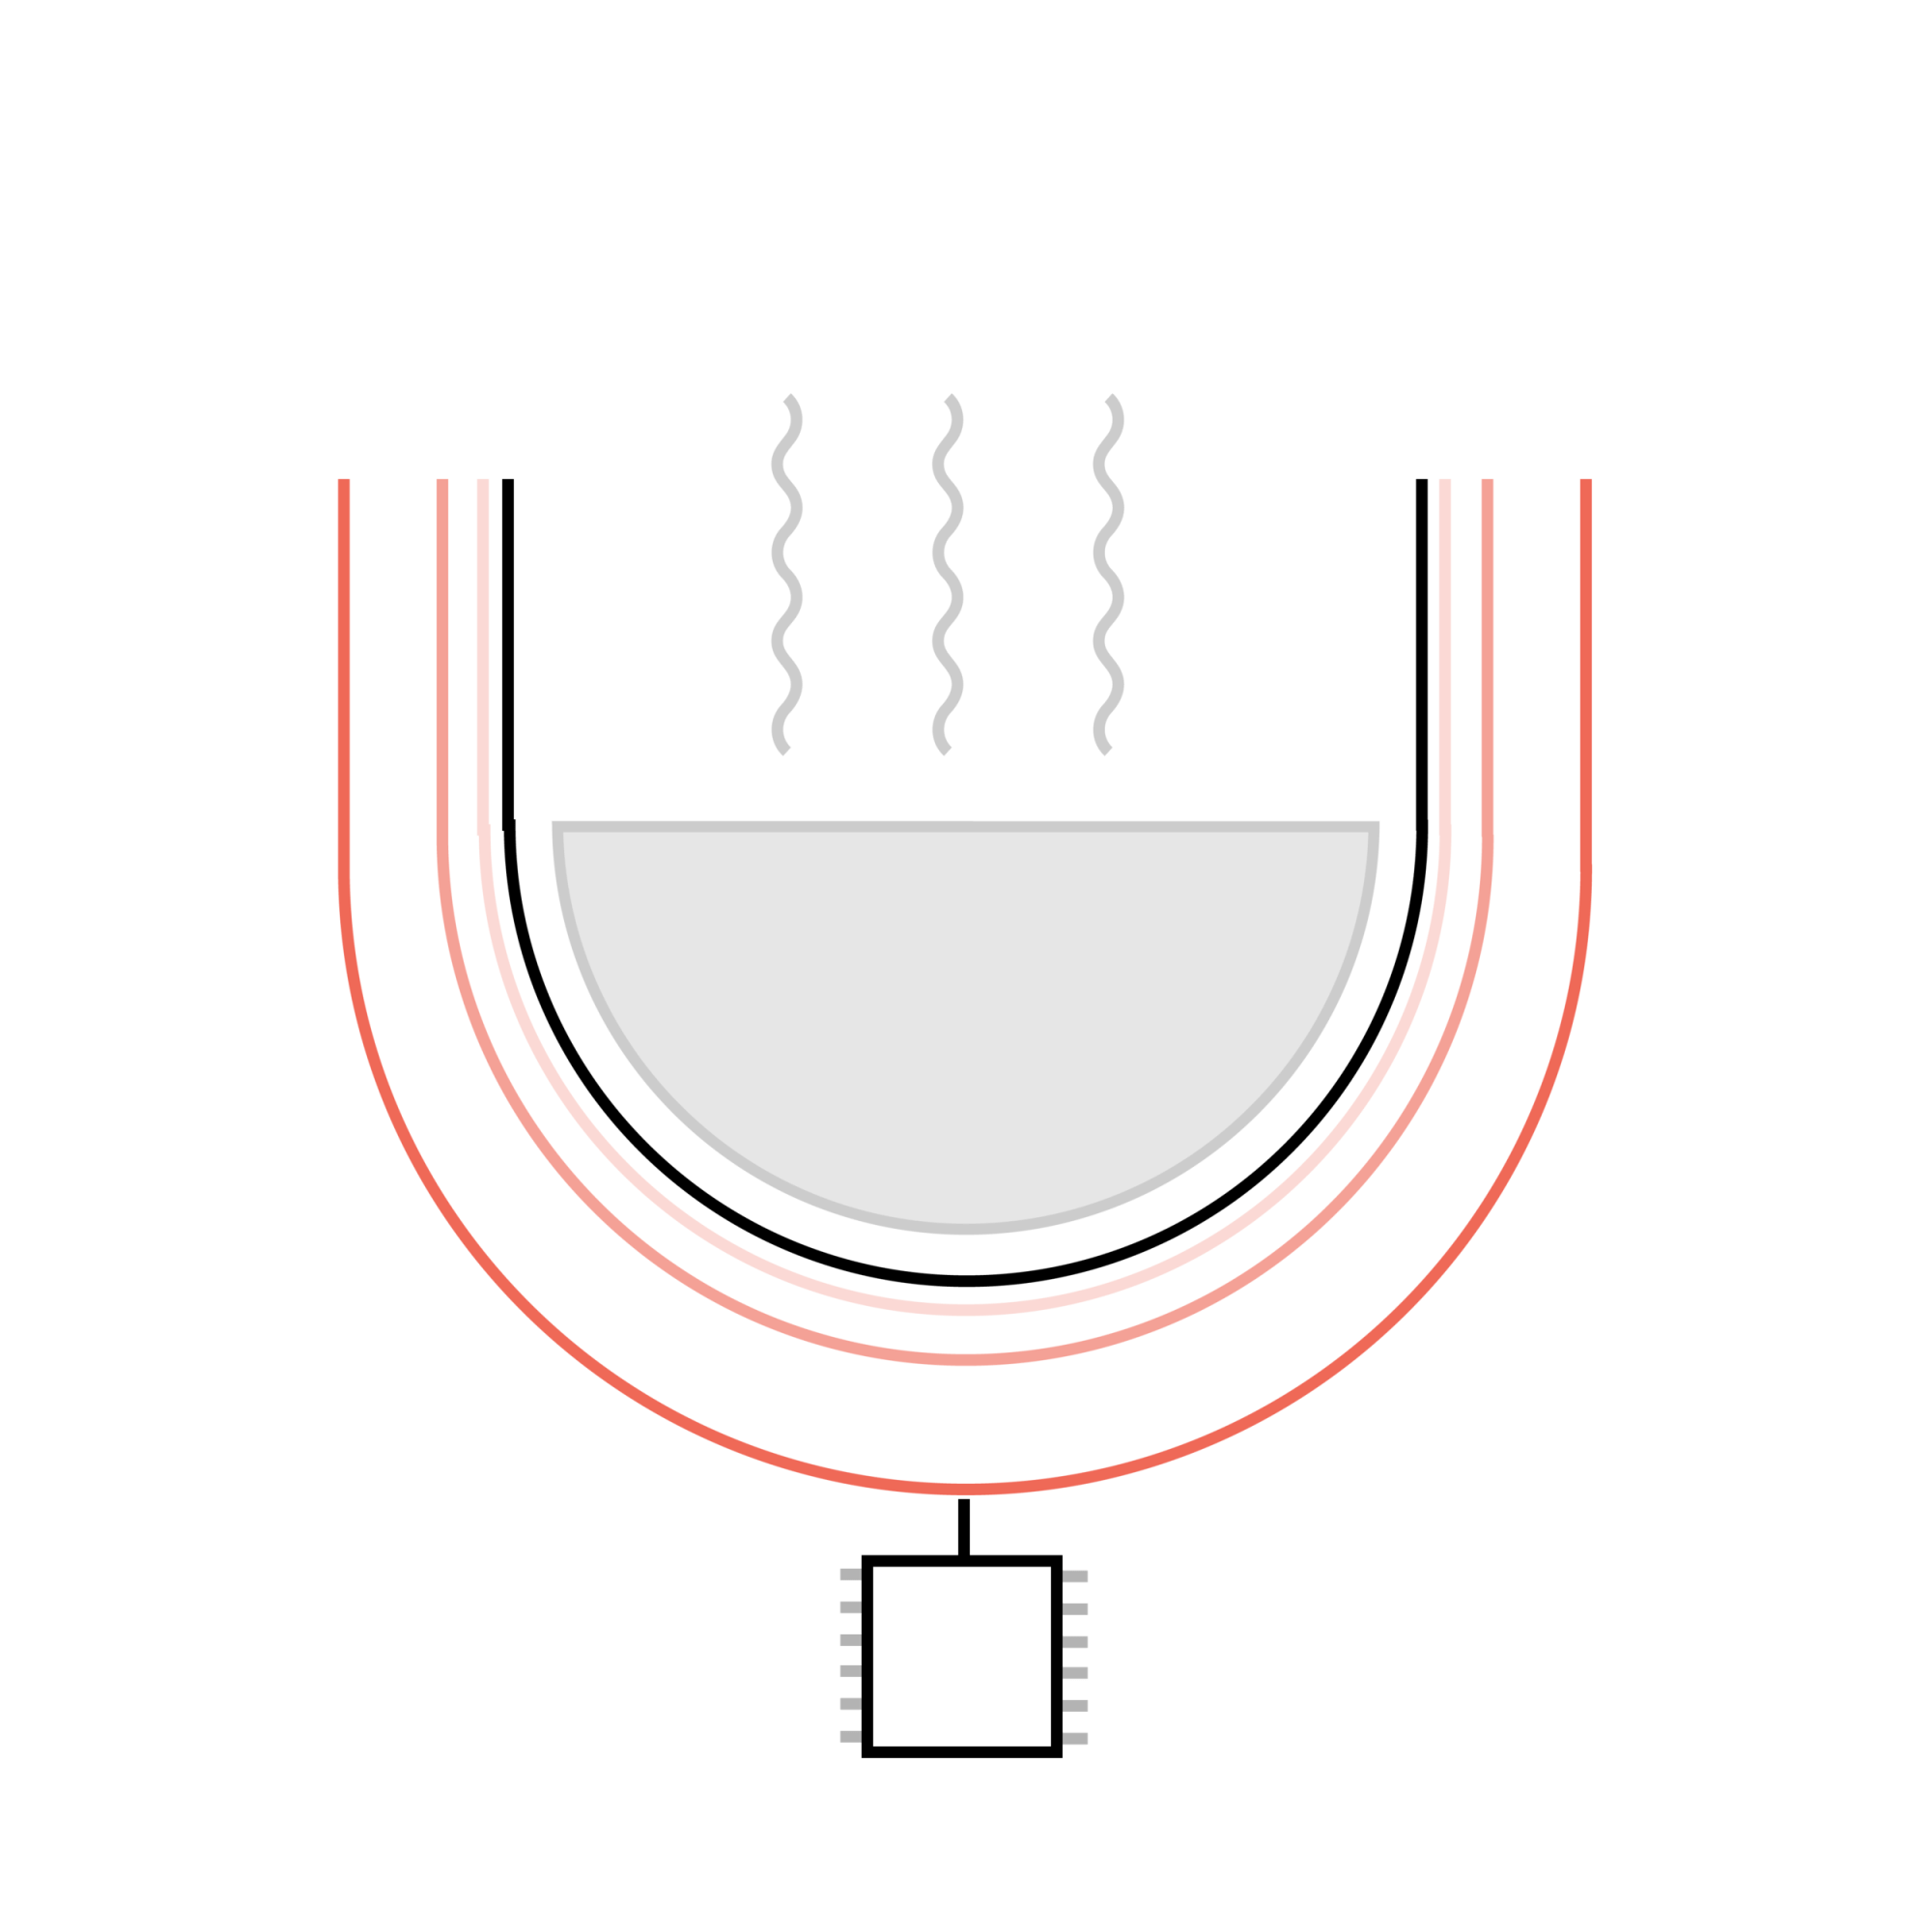 hight resolution of magnetic coils are used to pass current into the cooking pan allowing a constant temperature to be given throughout the rice